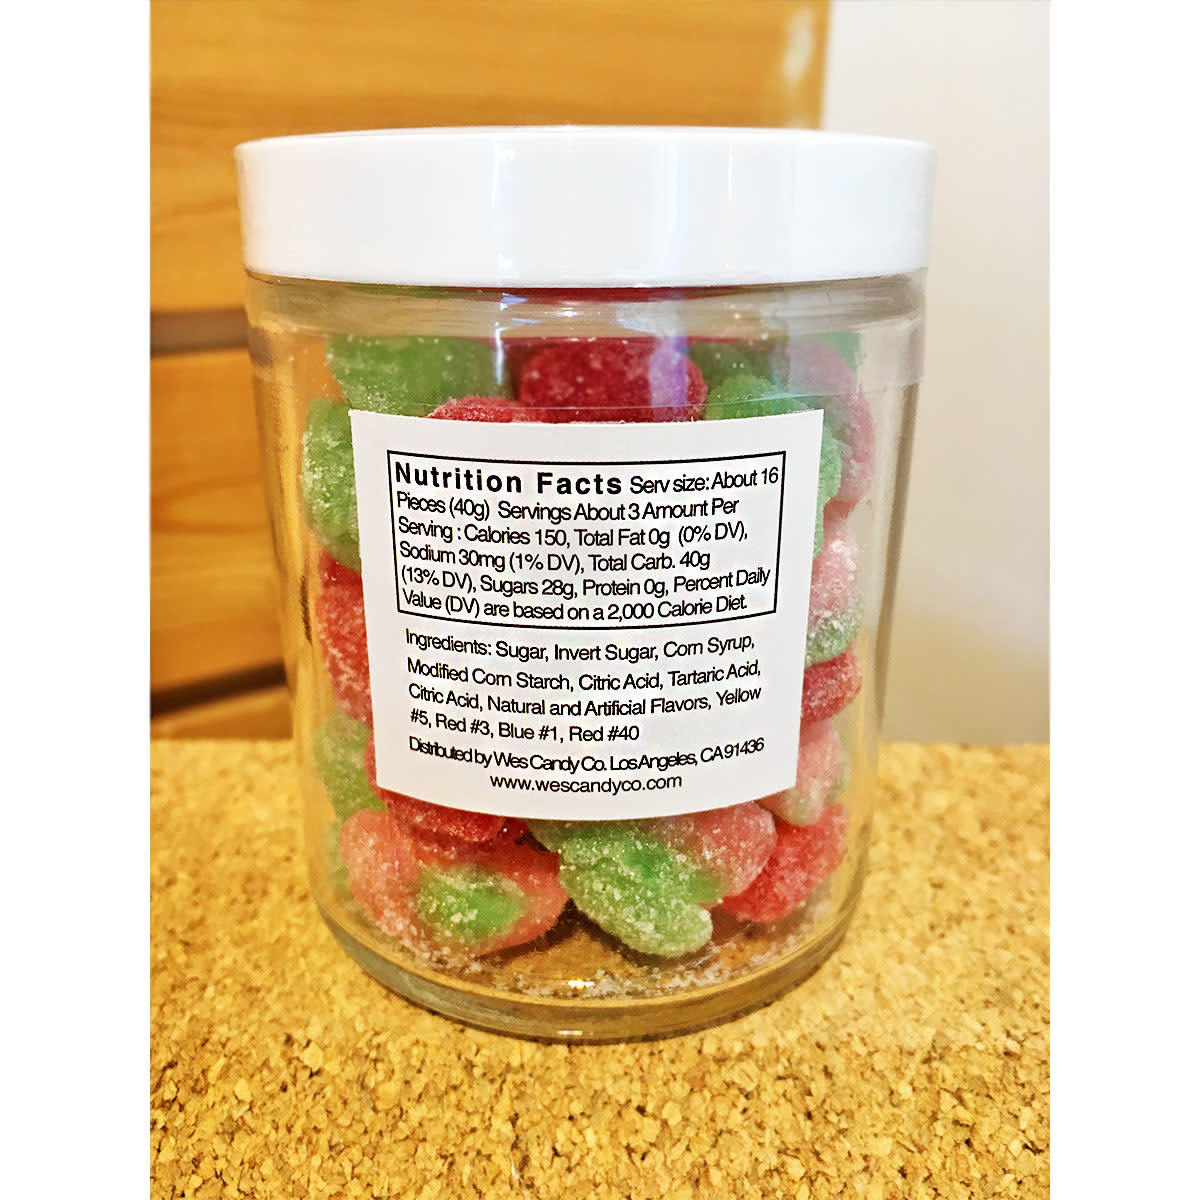 Wes Candy Co. Sweet Fruit Gummy Candy Mix